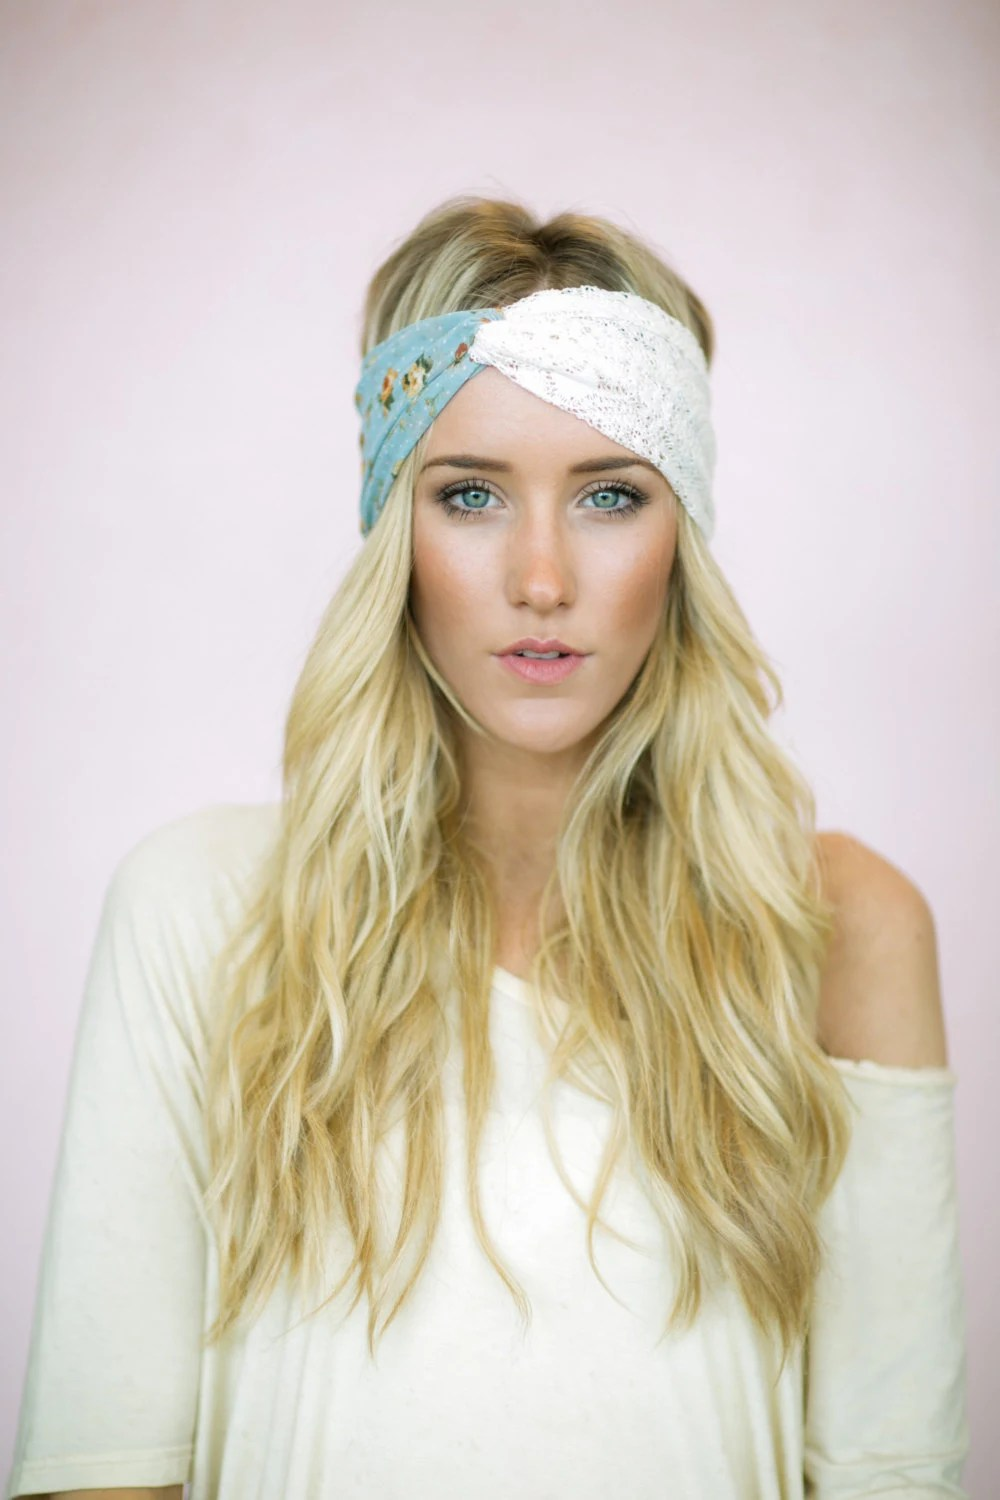 Dusty Rose Lace Turban Headband, Handmade Hair Bands, Fashion Hair Accessories, Crochet Lace and Light Dusty Blue Floral (HB-133)